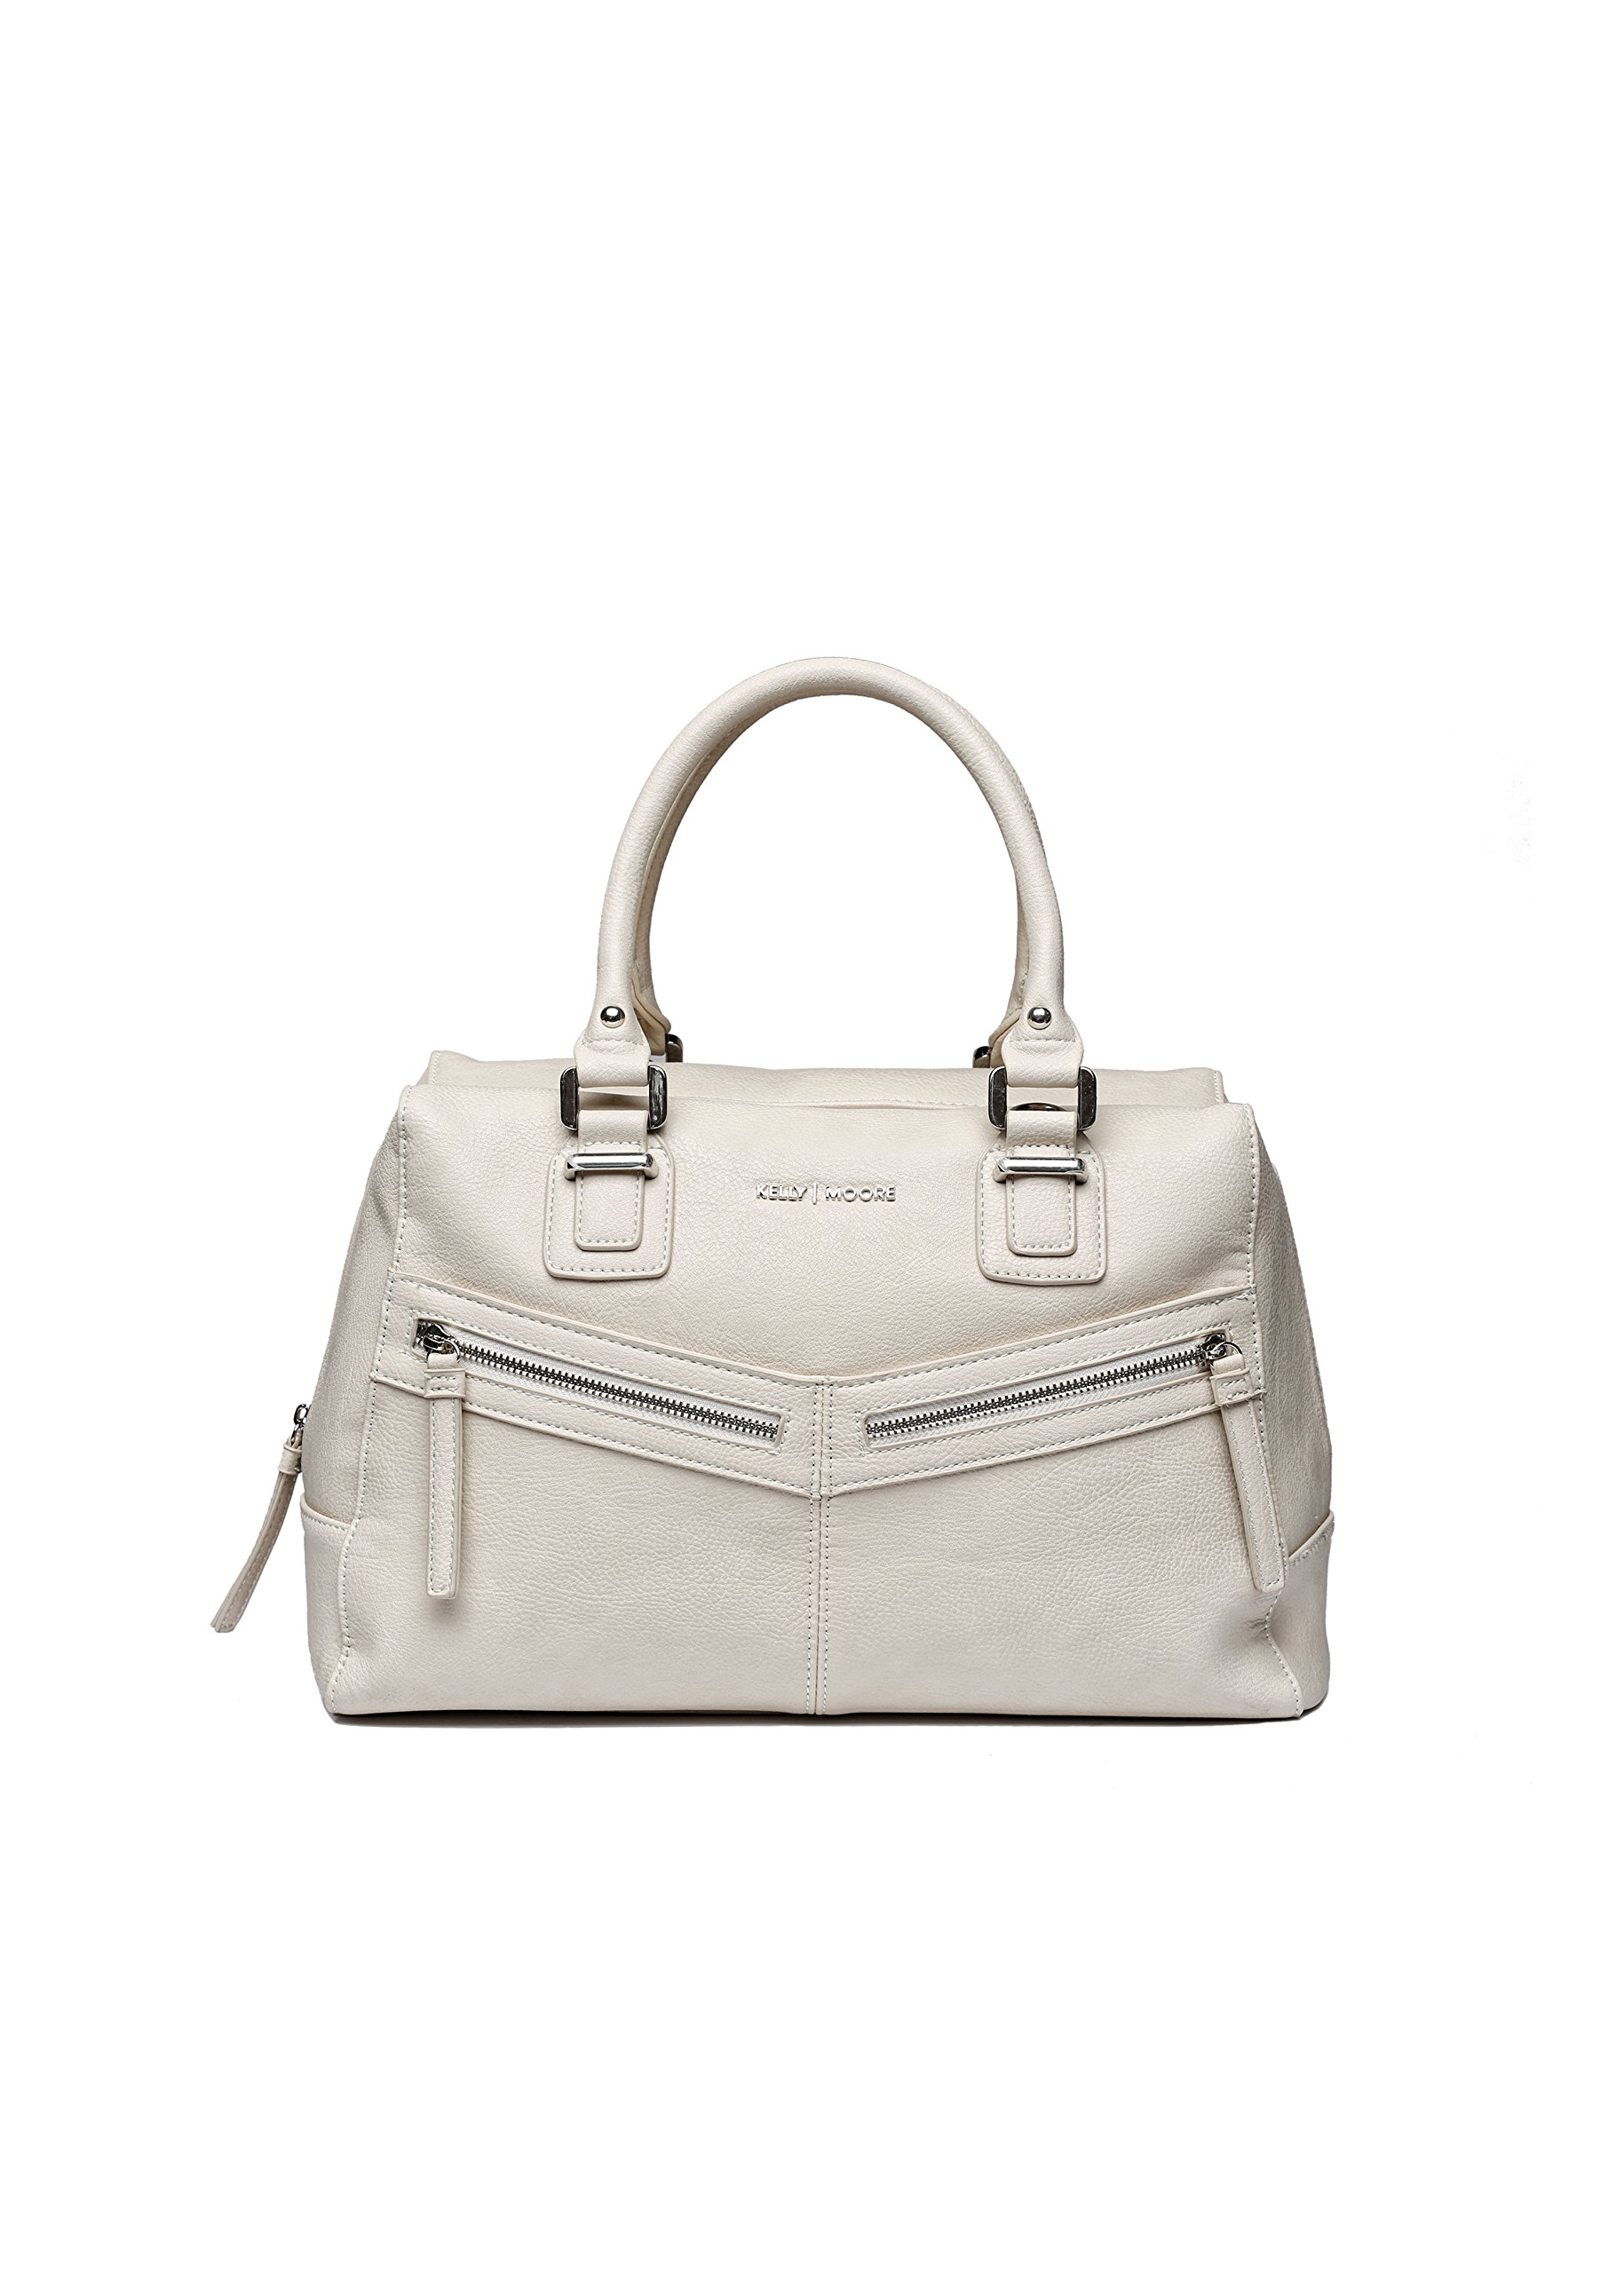 Kelly Moore Bag - Ruston Bone